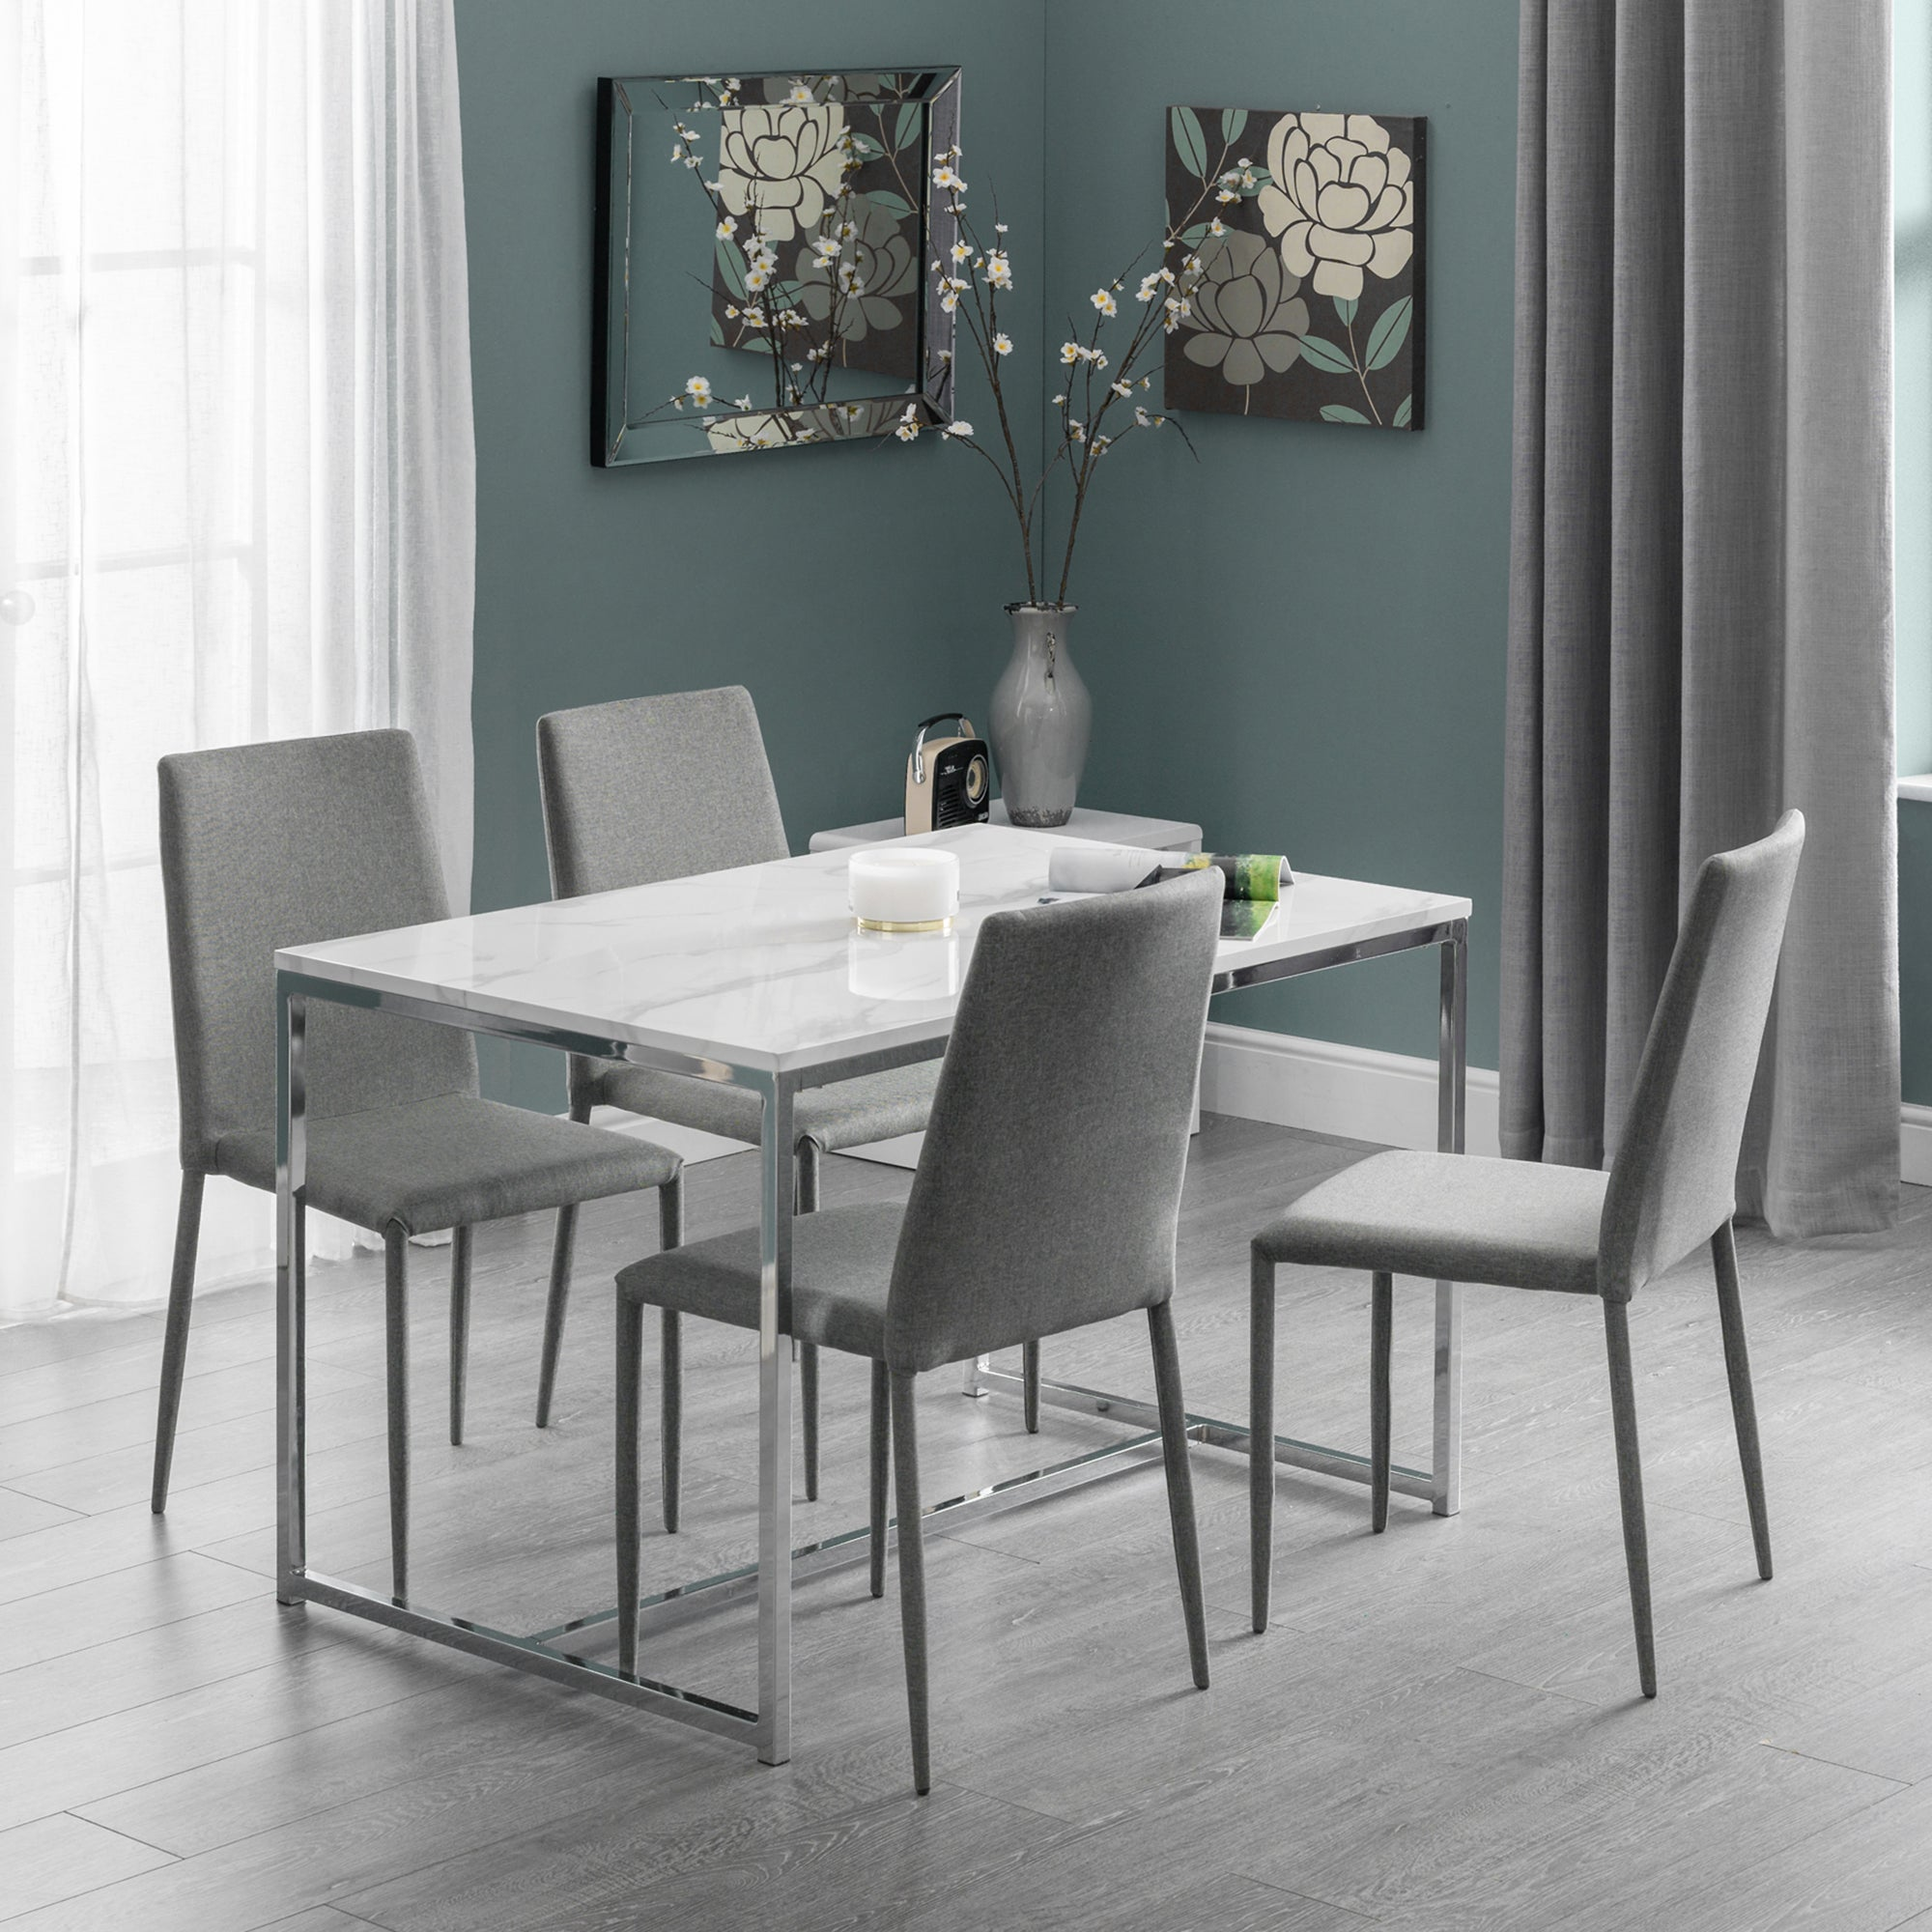 Dunelm Scala Dining Table & 4 Jazz Grey Chairs Silver |